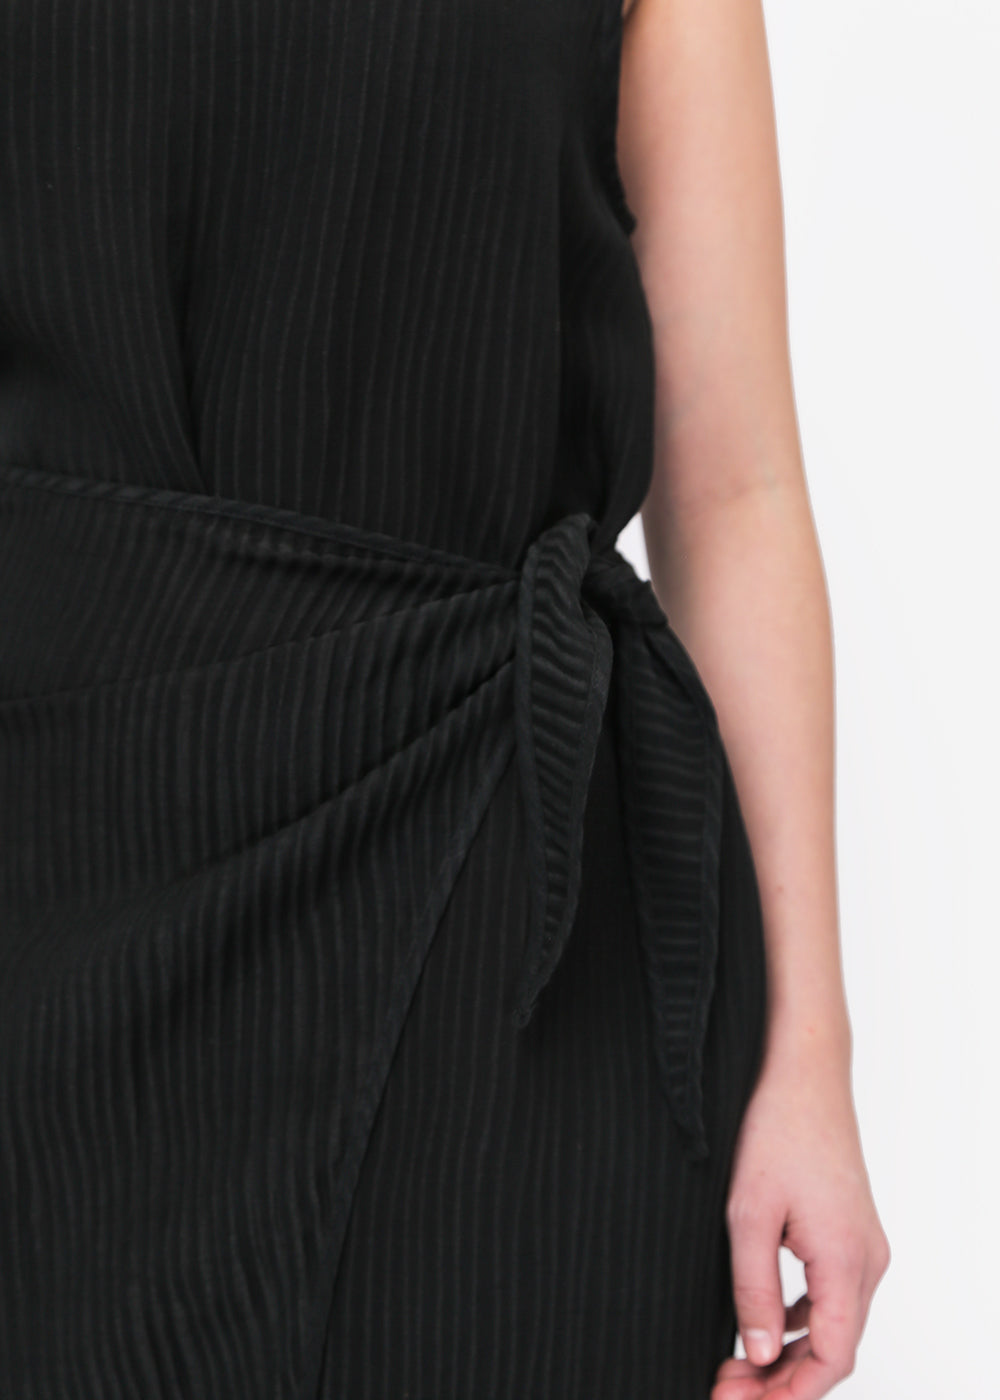 Priory Nett Dress — Shop sustainable fashion and slow fashion at New Classics Studios